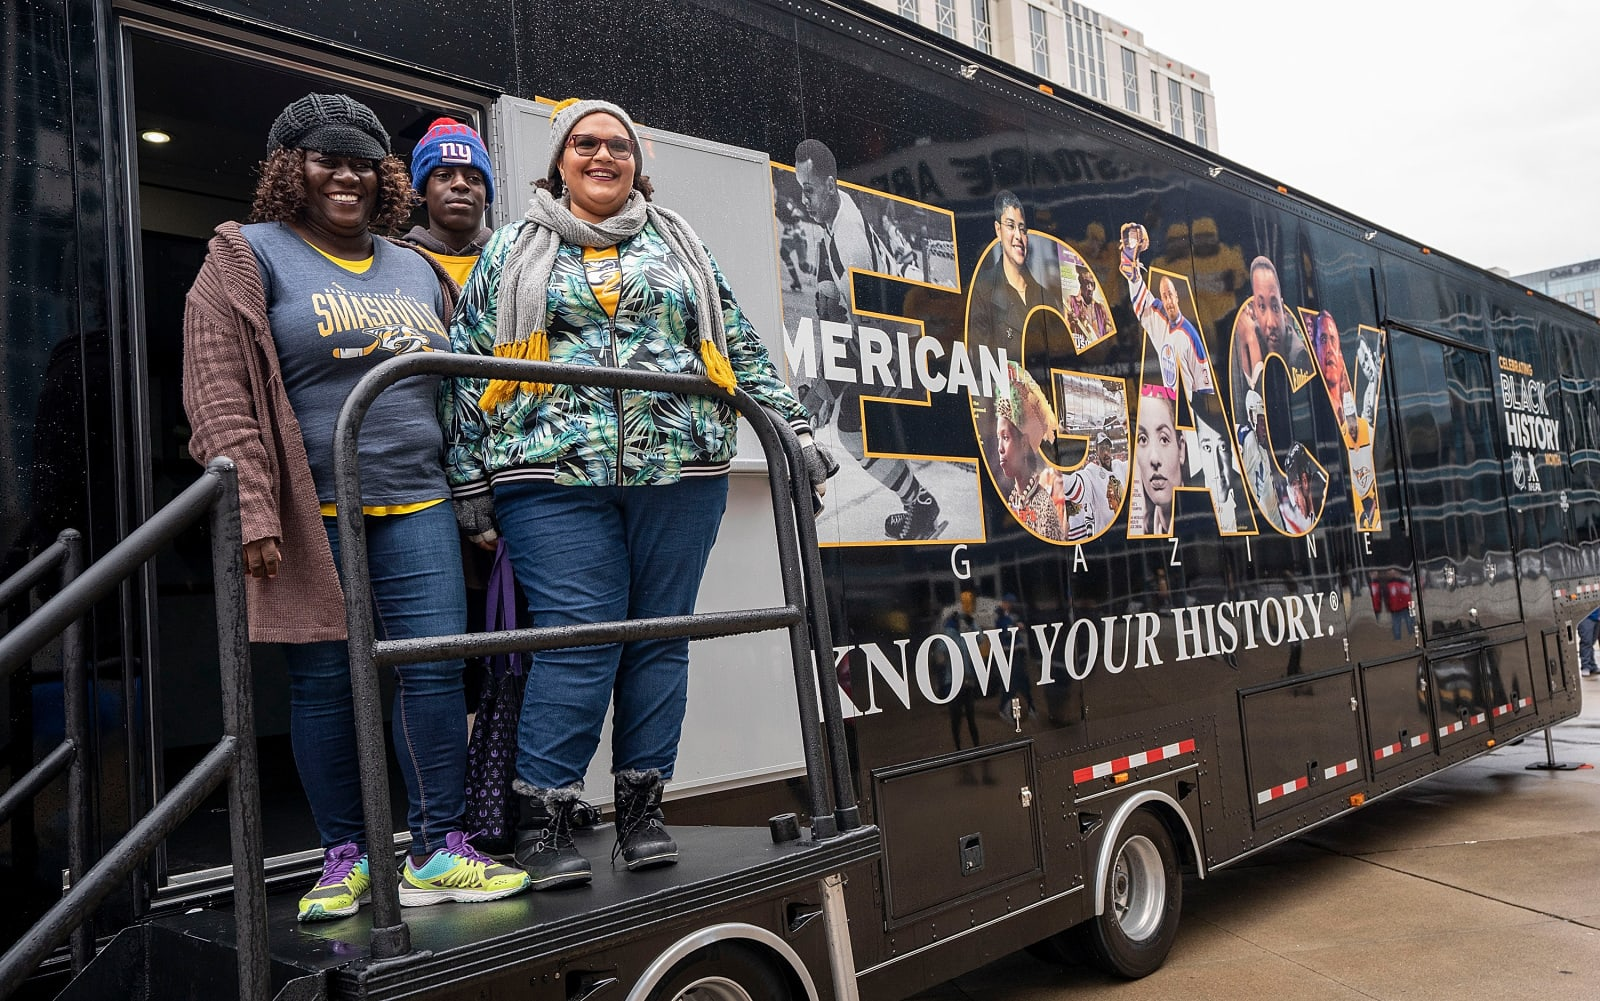 NASHVILLE, TN - FEBRUARY 10: Black Girl Hockey Club members visit the Black History Month Museum outside Bridgestone Arena prior to an NHL game between the Nashville Predators and the St. Louis Blues on February 10, 2019 in Nashville, Tennessee. (Photo by John Russell/NHLI via Getty Images)